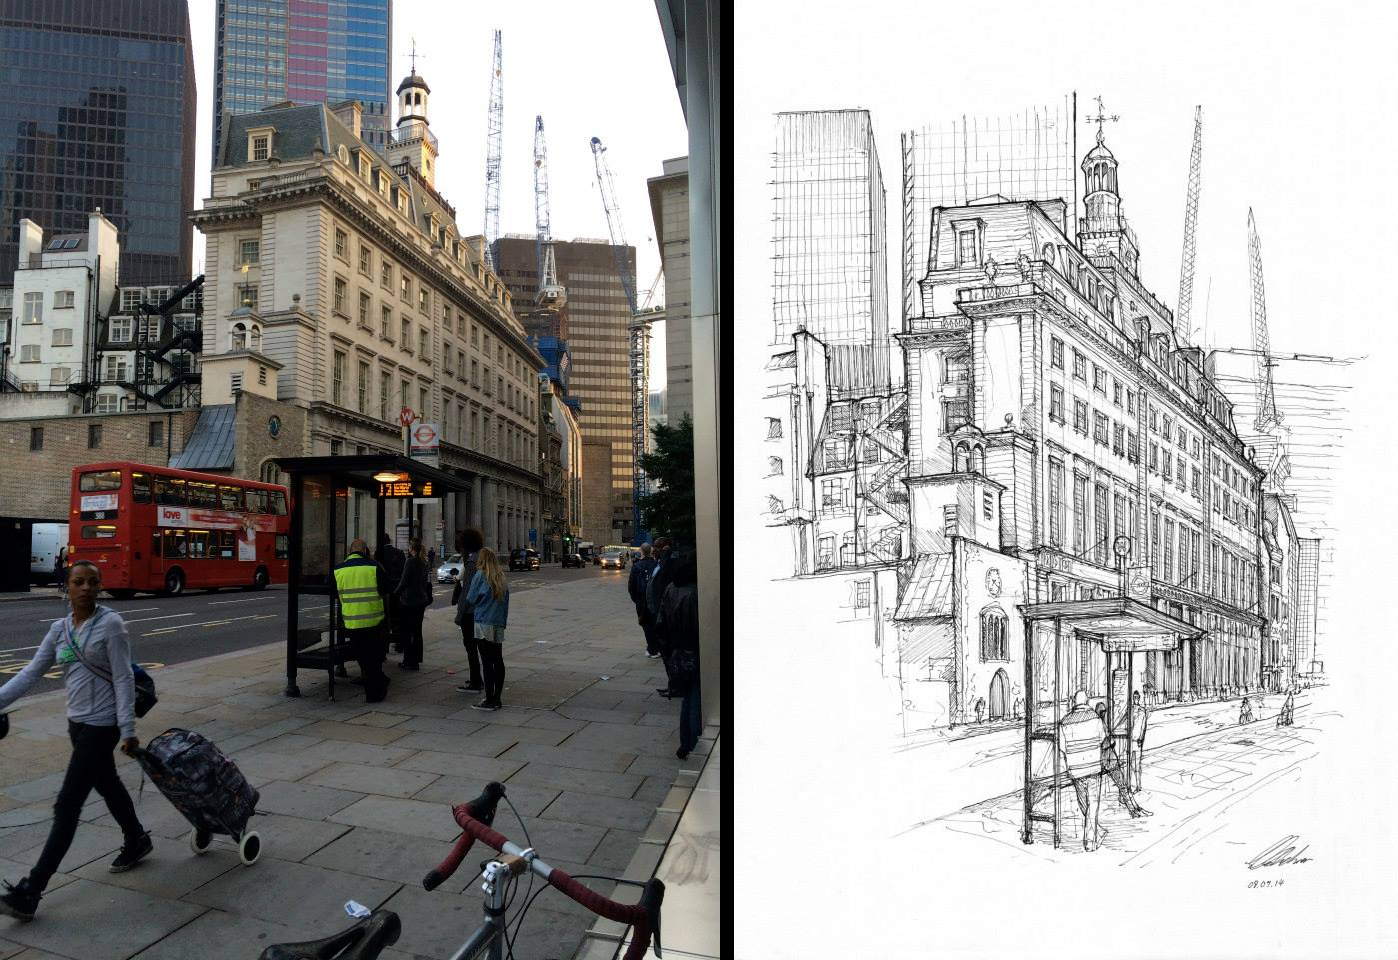 01-Hasilwood-House-Bishopsgate-Luke-Adam-Hawker-Creating-Architectural-Drawings-on-Location-www-designstack-co